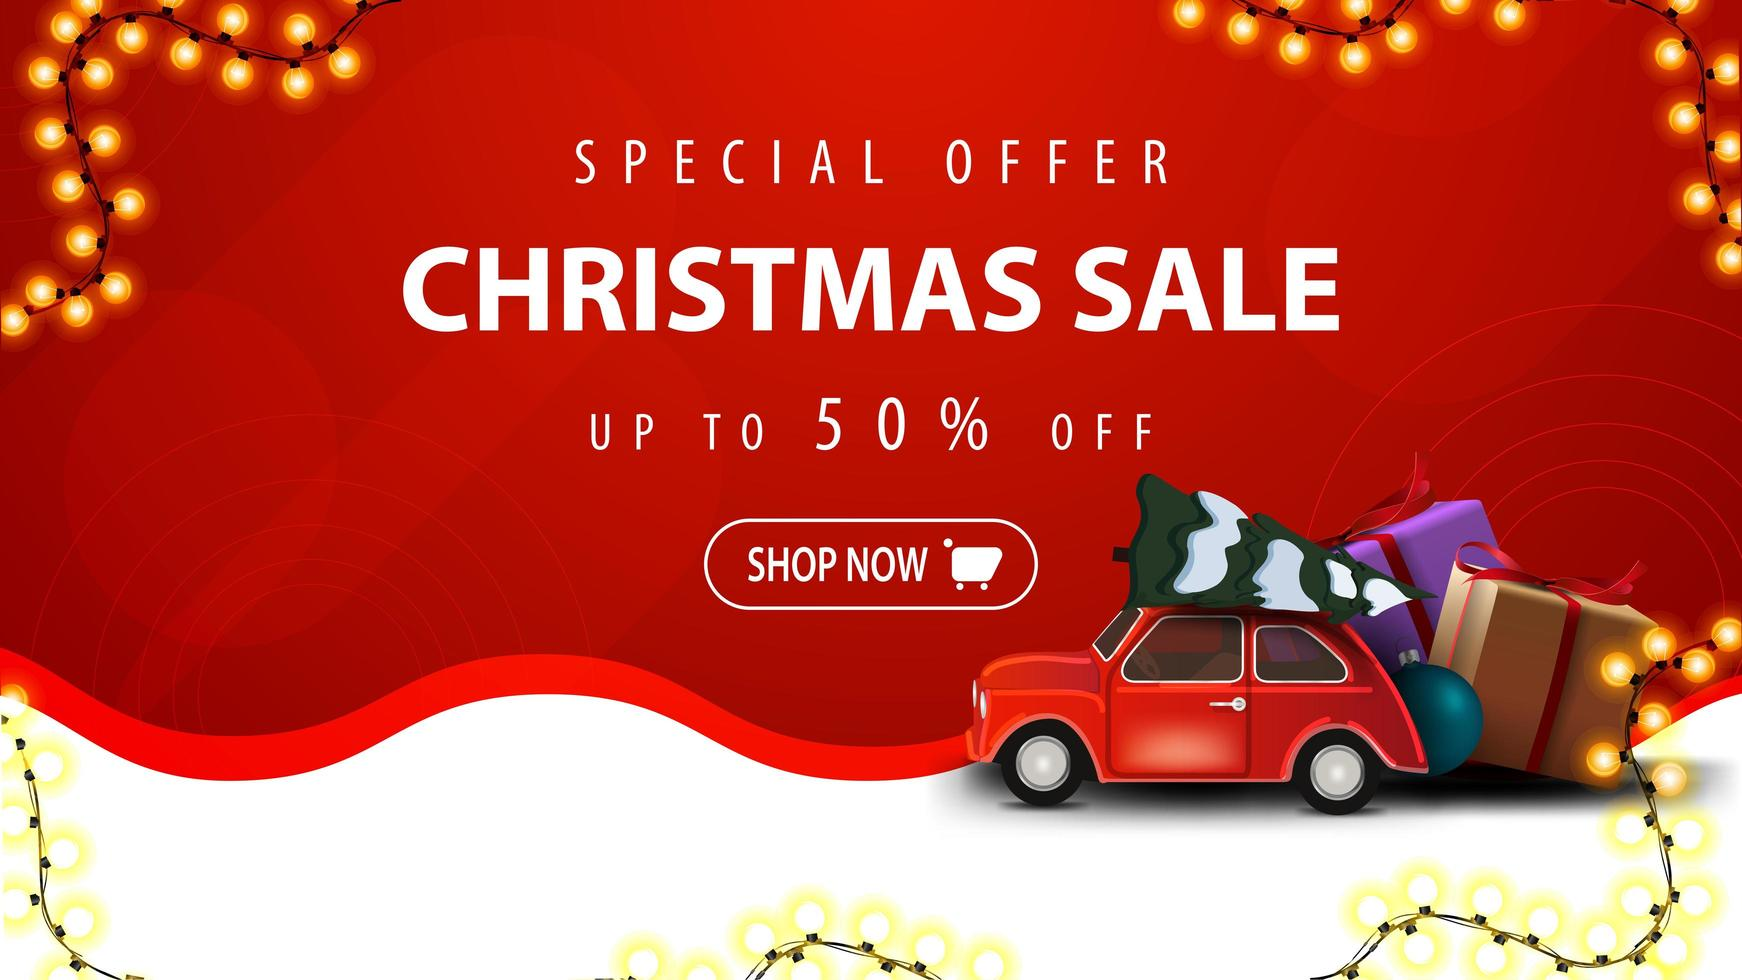 Special offer, Christmas sale, up to 50 off, white and red discount banner with garland, wavy line and red vintage car carrying Christmas tree vector